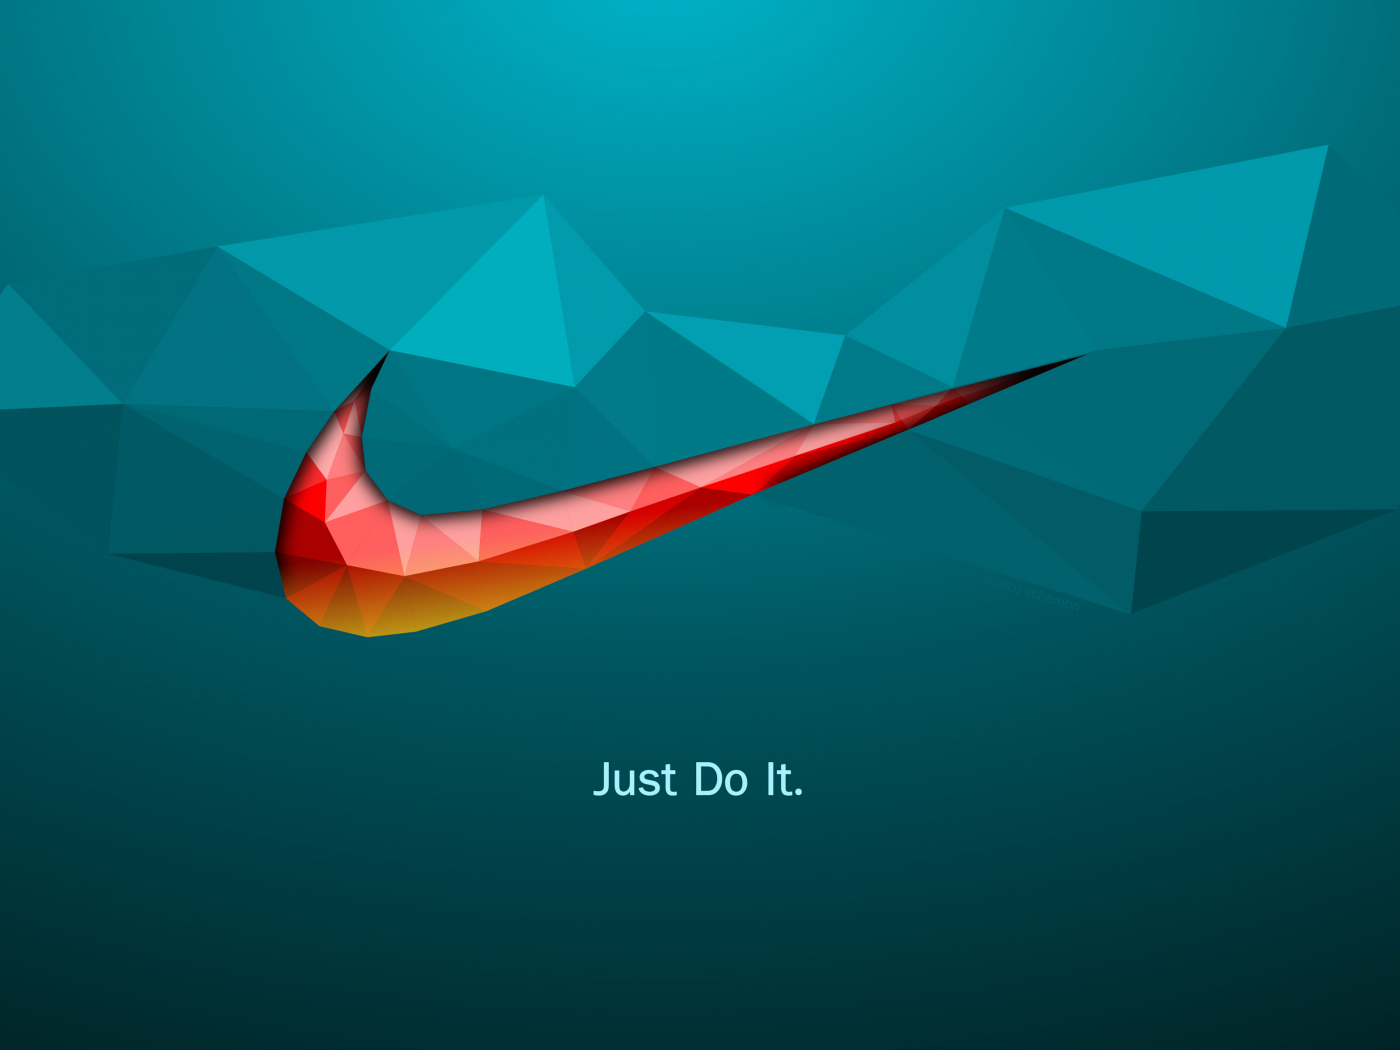 1400x1050 wallpaper Just do it, quotes, Nike, logo, abstract